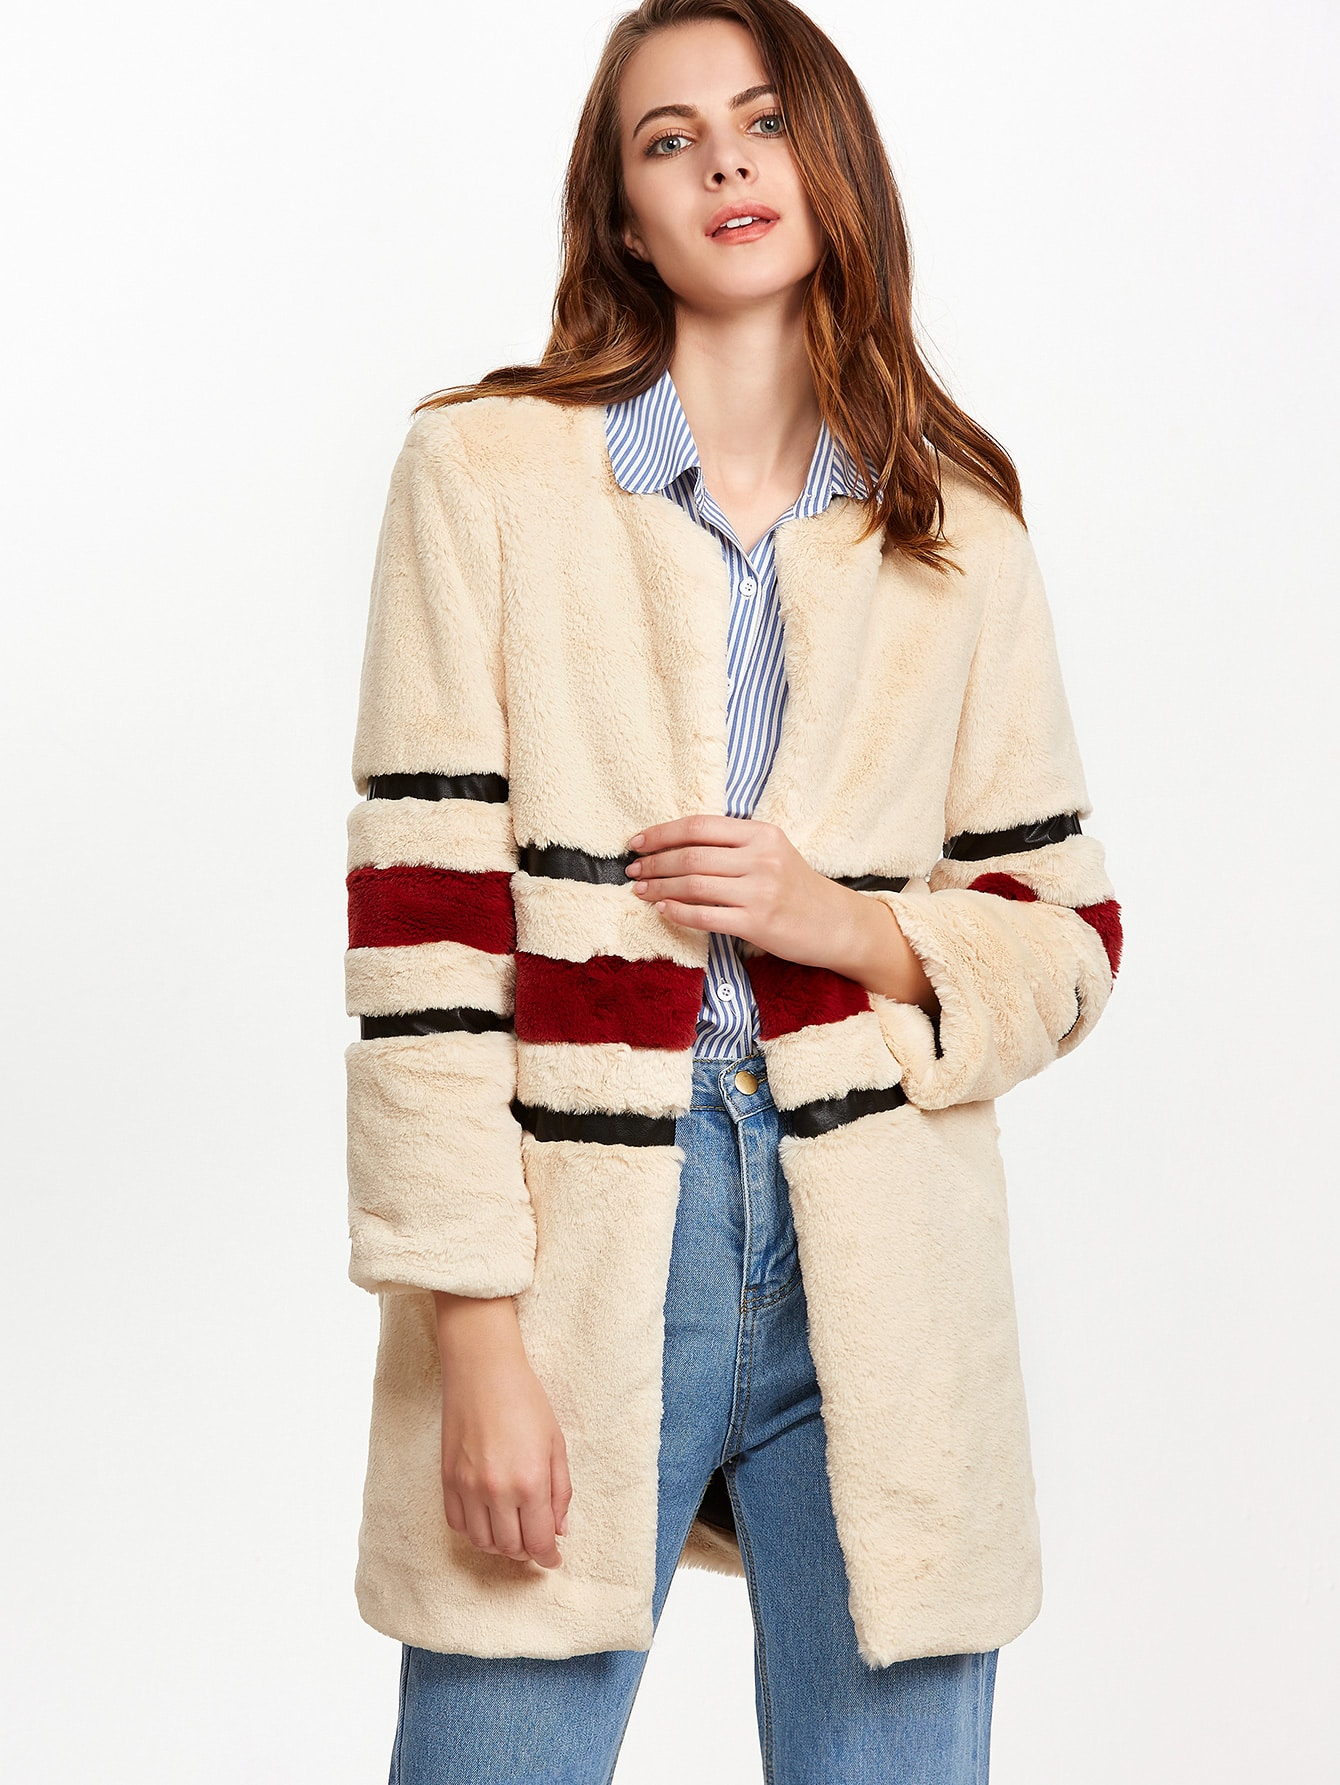 Coats Apricot Faux Fur Collarless Short Winter Striped Fabric has no stretch Long Sleeve Outerwear.